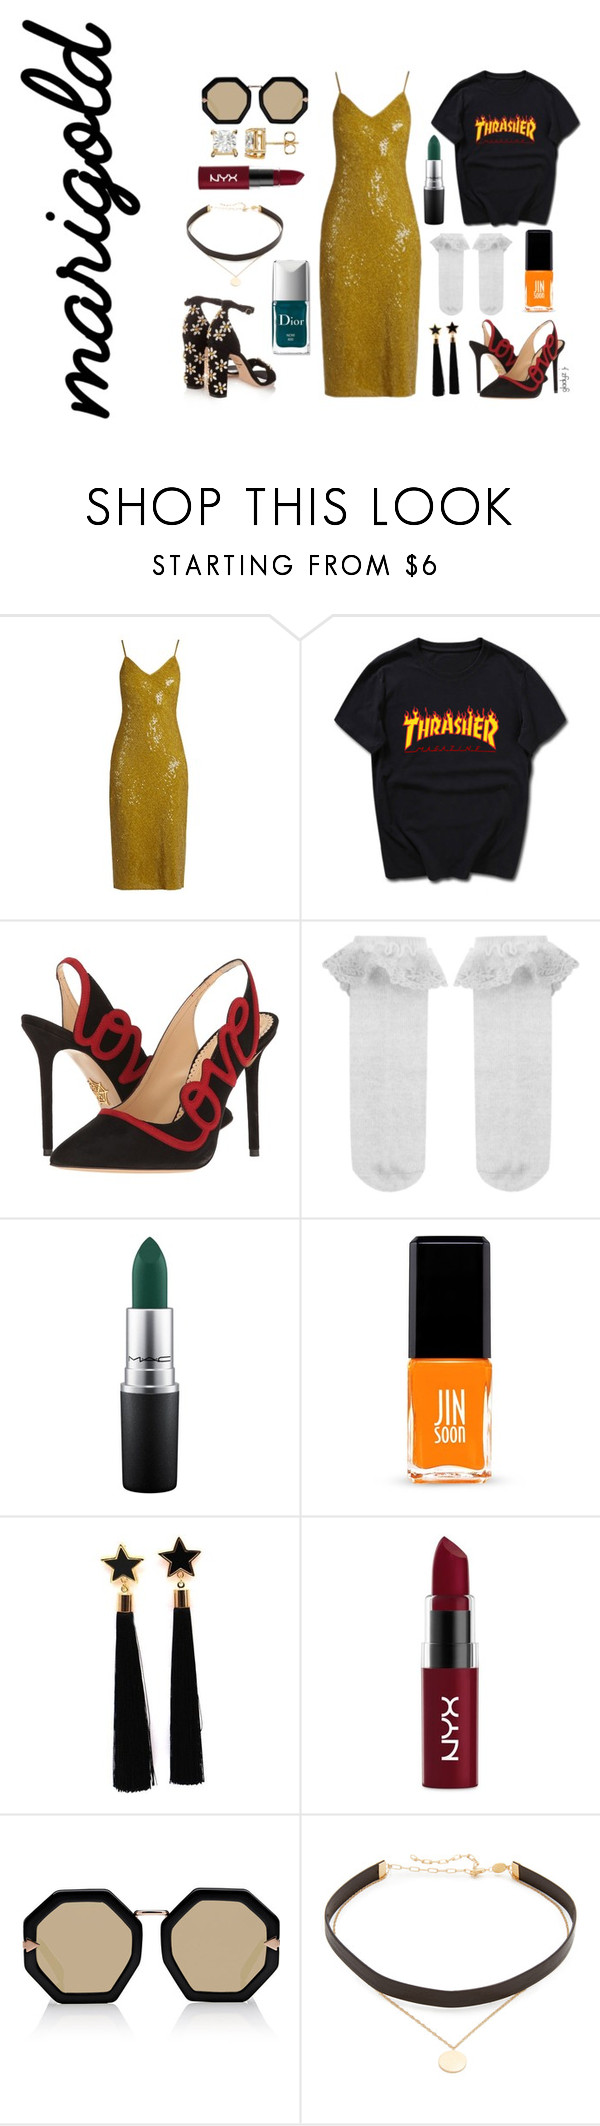 """marigold dress deux"" by gladyzjetson ❤ liked on Polyvore featuring Diane Von Furstenberg, Charlotte Olympia, Monsoon, MAC Cosmetics, Jin Soon, Dolce&Gabbana, NYX, Karen Walker, Jennifer Zeuner and Couture Colour"